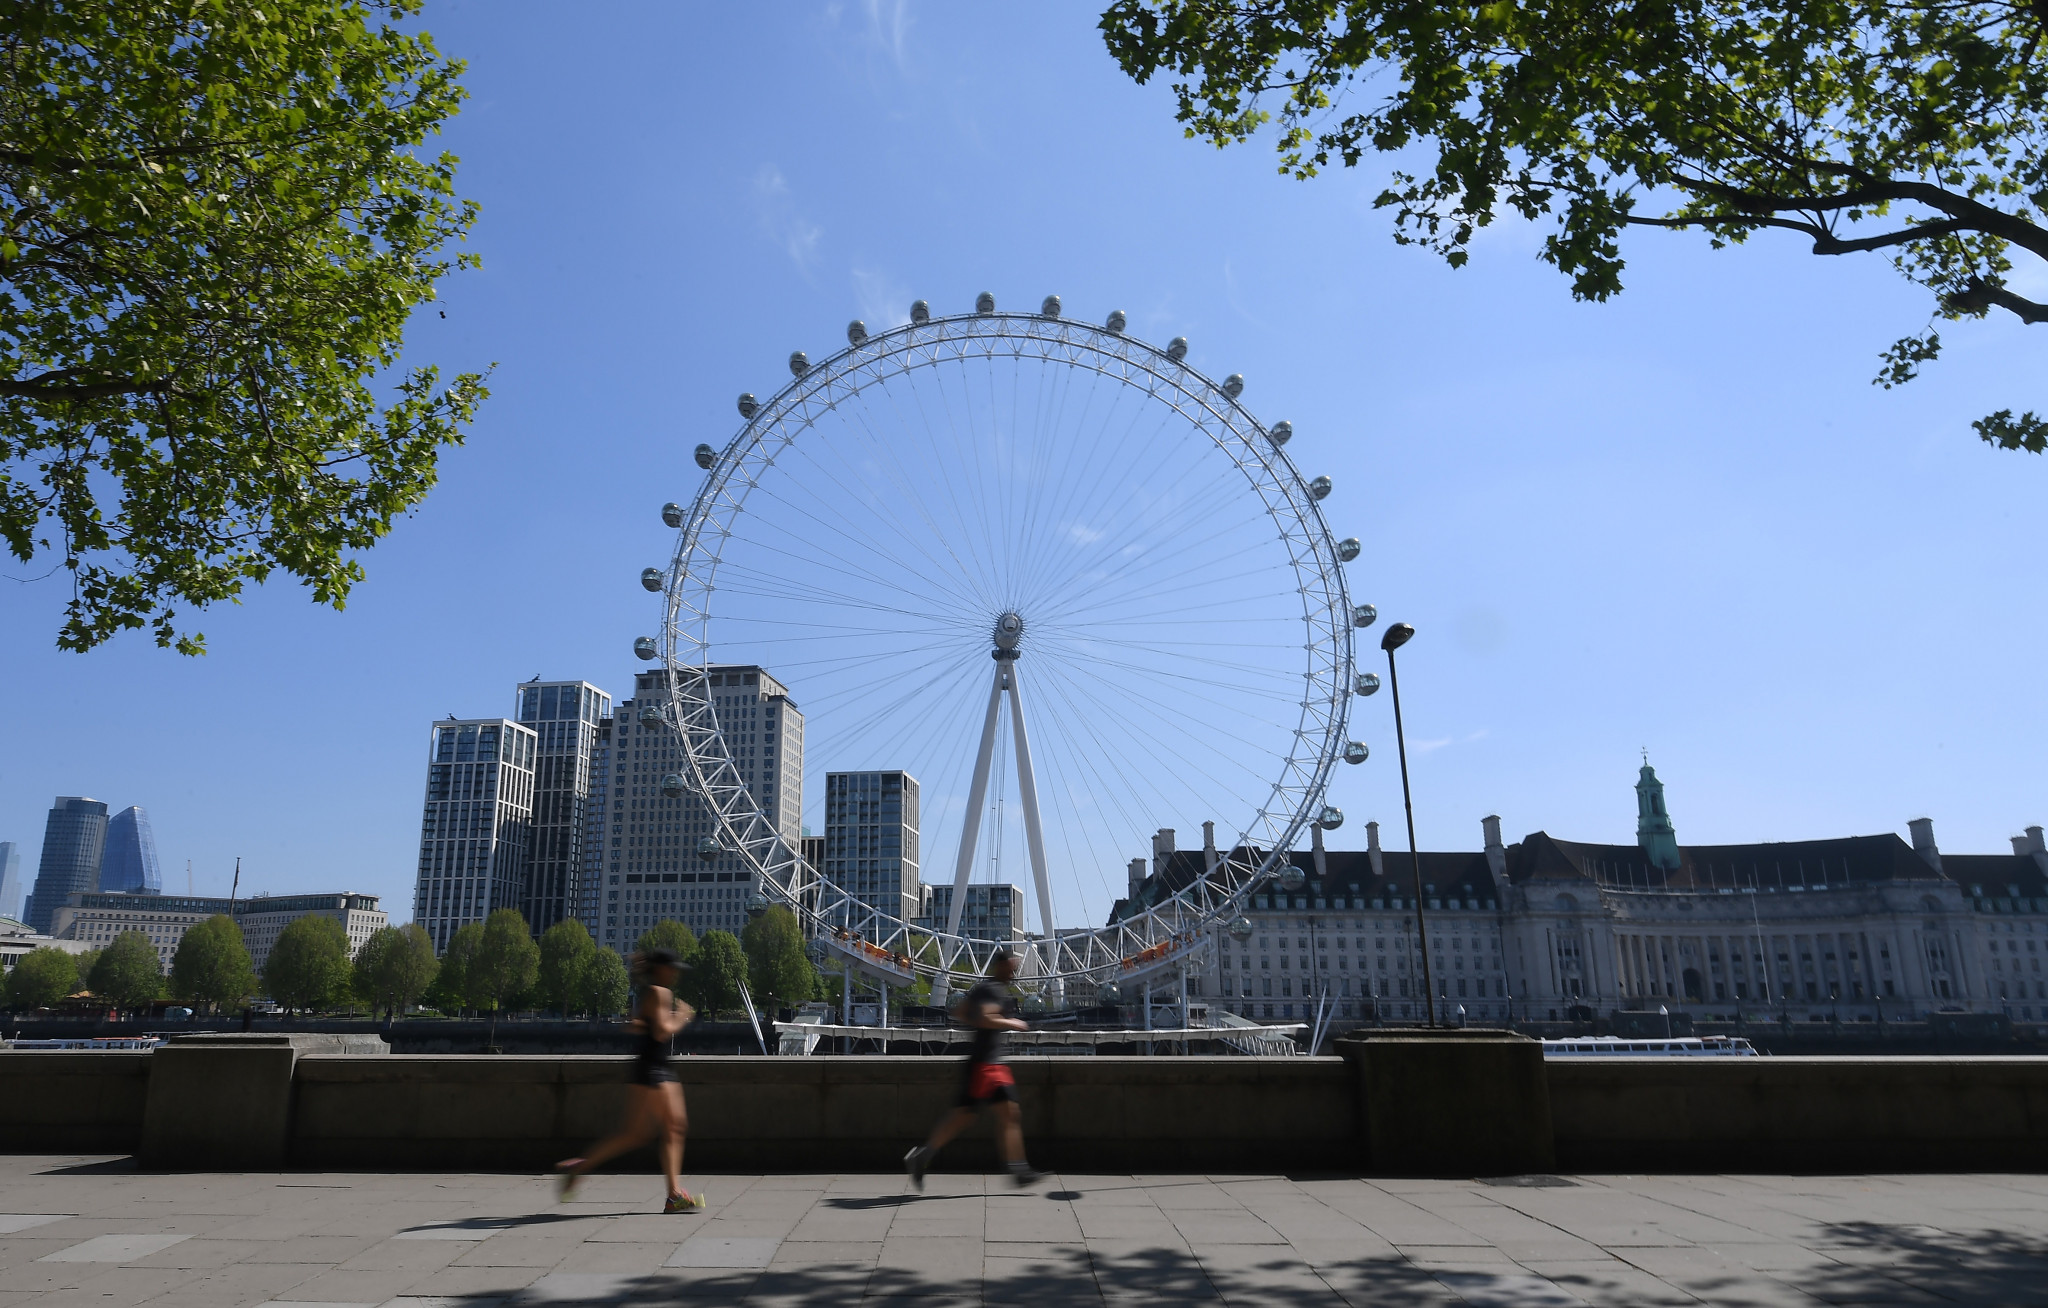 The coronavirus pandemic has postponed this year's London Marathon, which now has an October date ©Getty Images